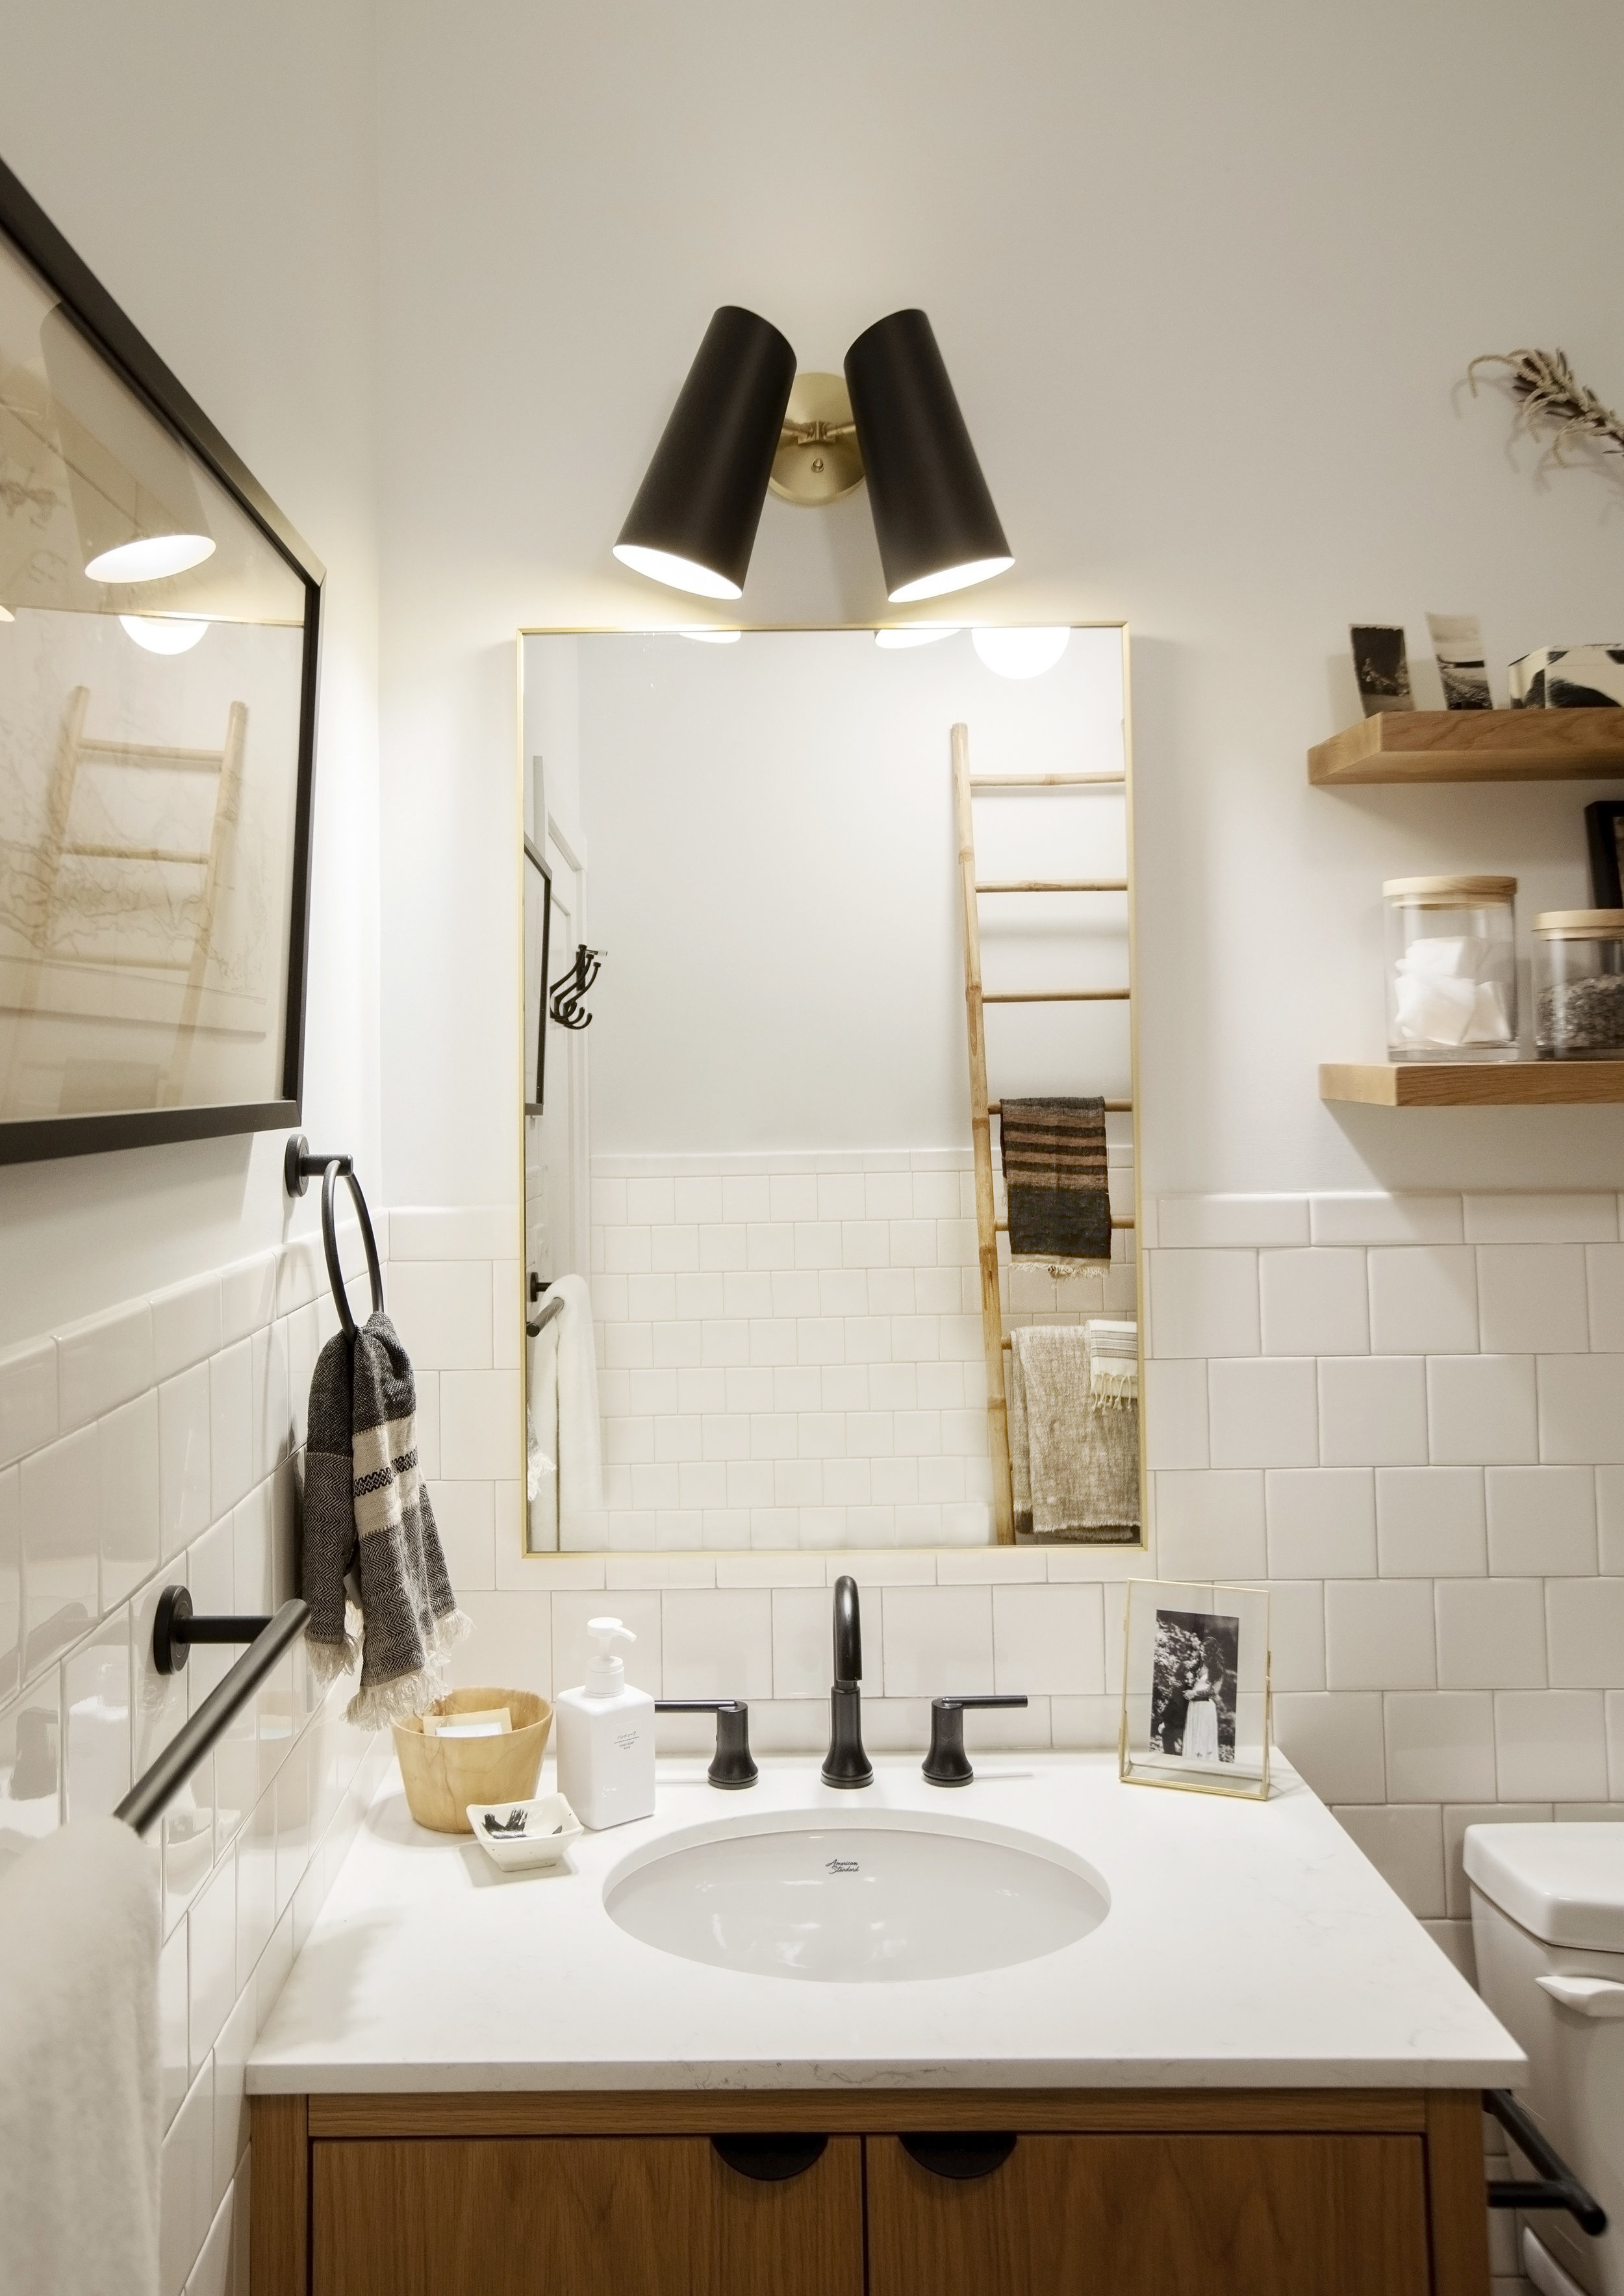 The bathroom at Alderfield Place has a beautiful gold mirror and black sconces hanging above